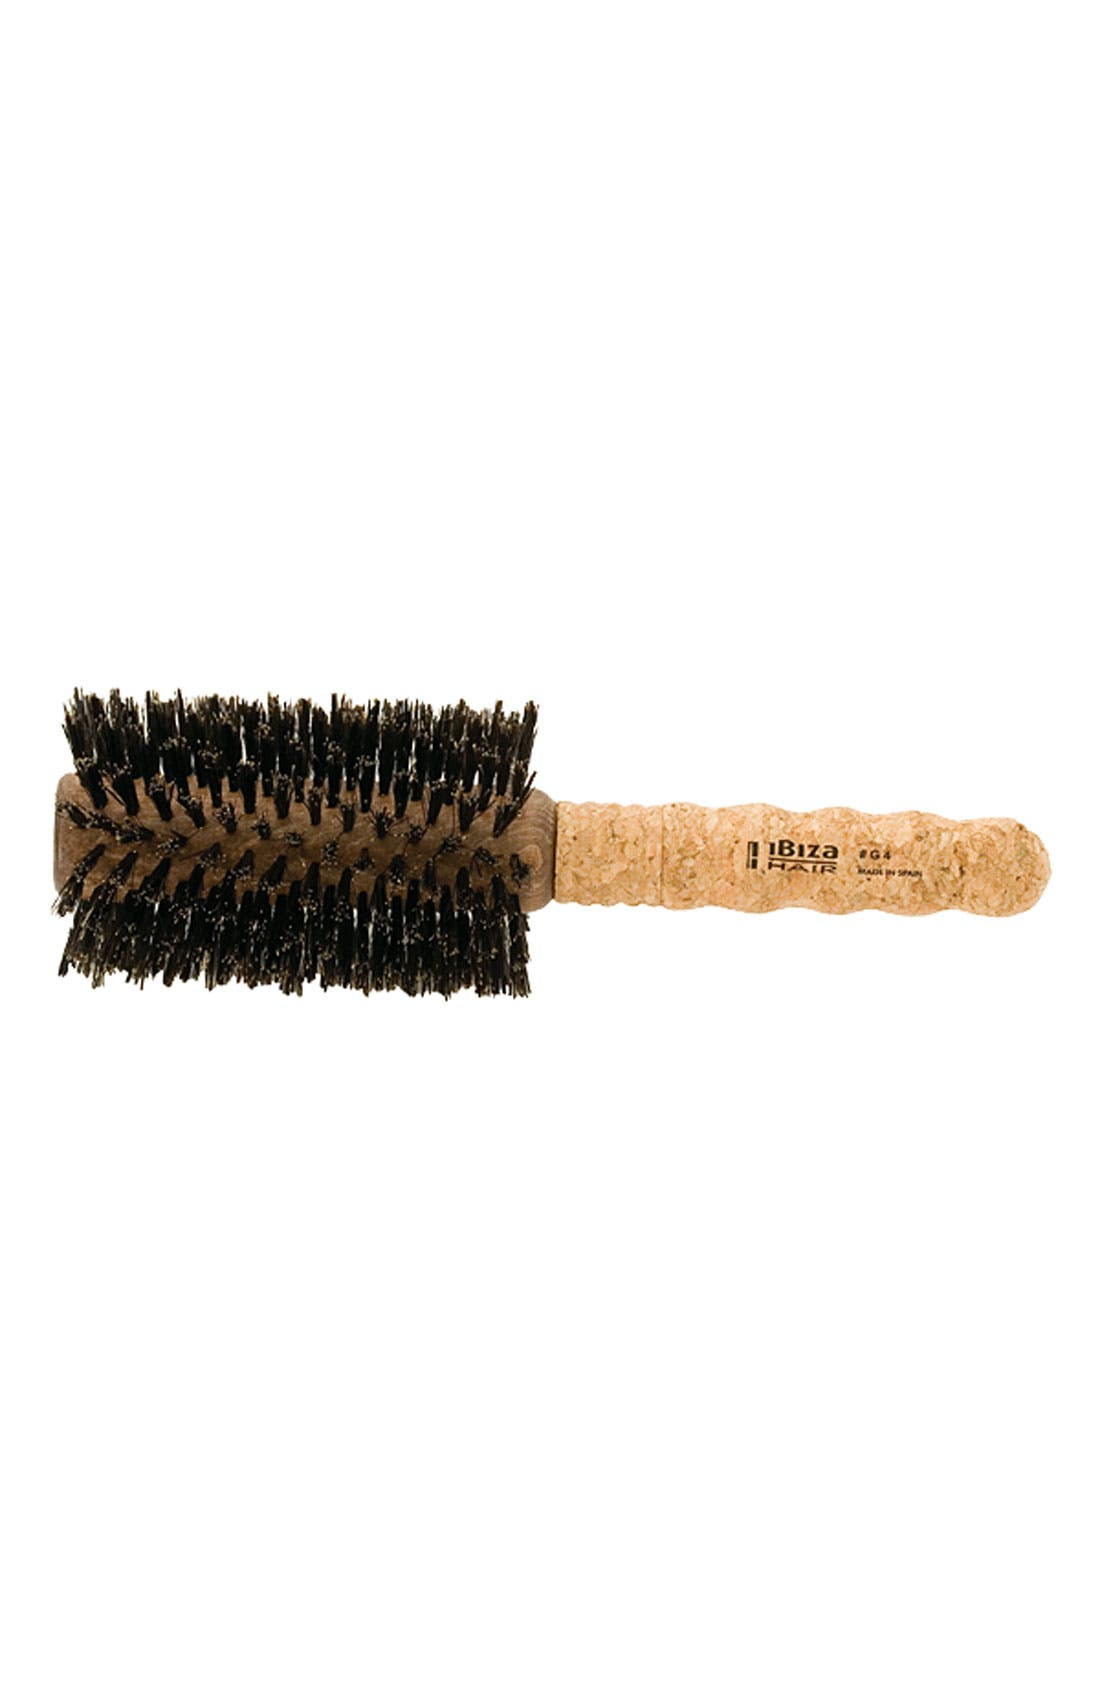 G4 Swirled Extended Cork Round Brush,                         Main,                         color, NO COLOR